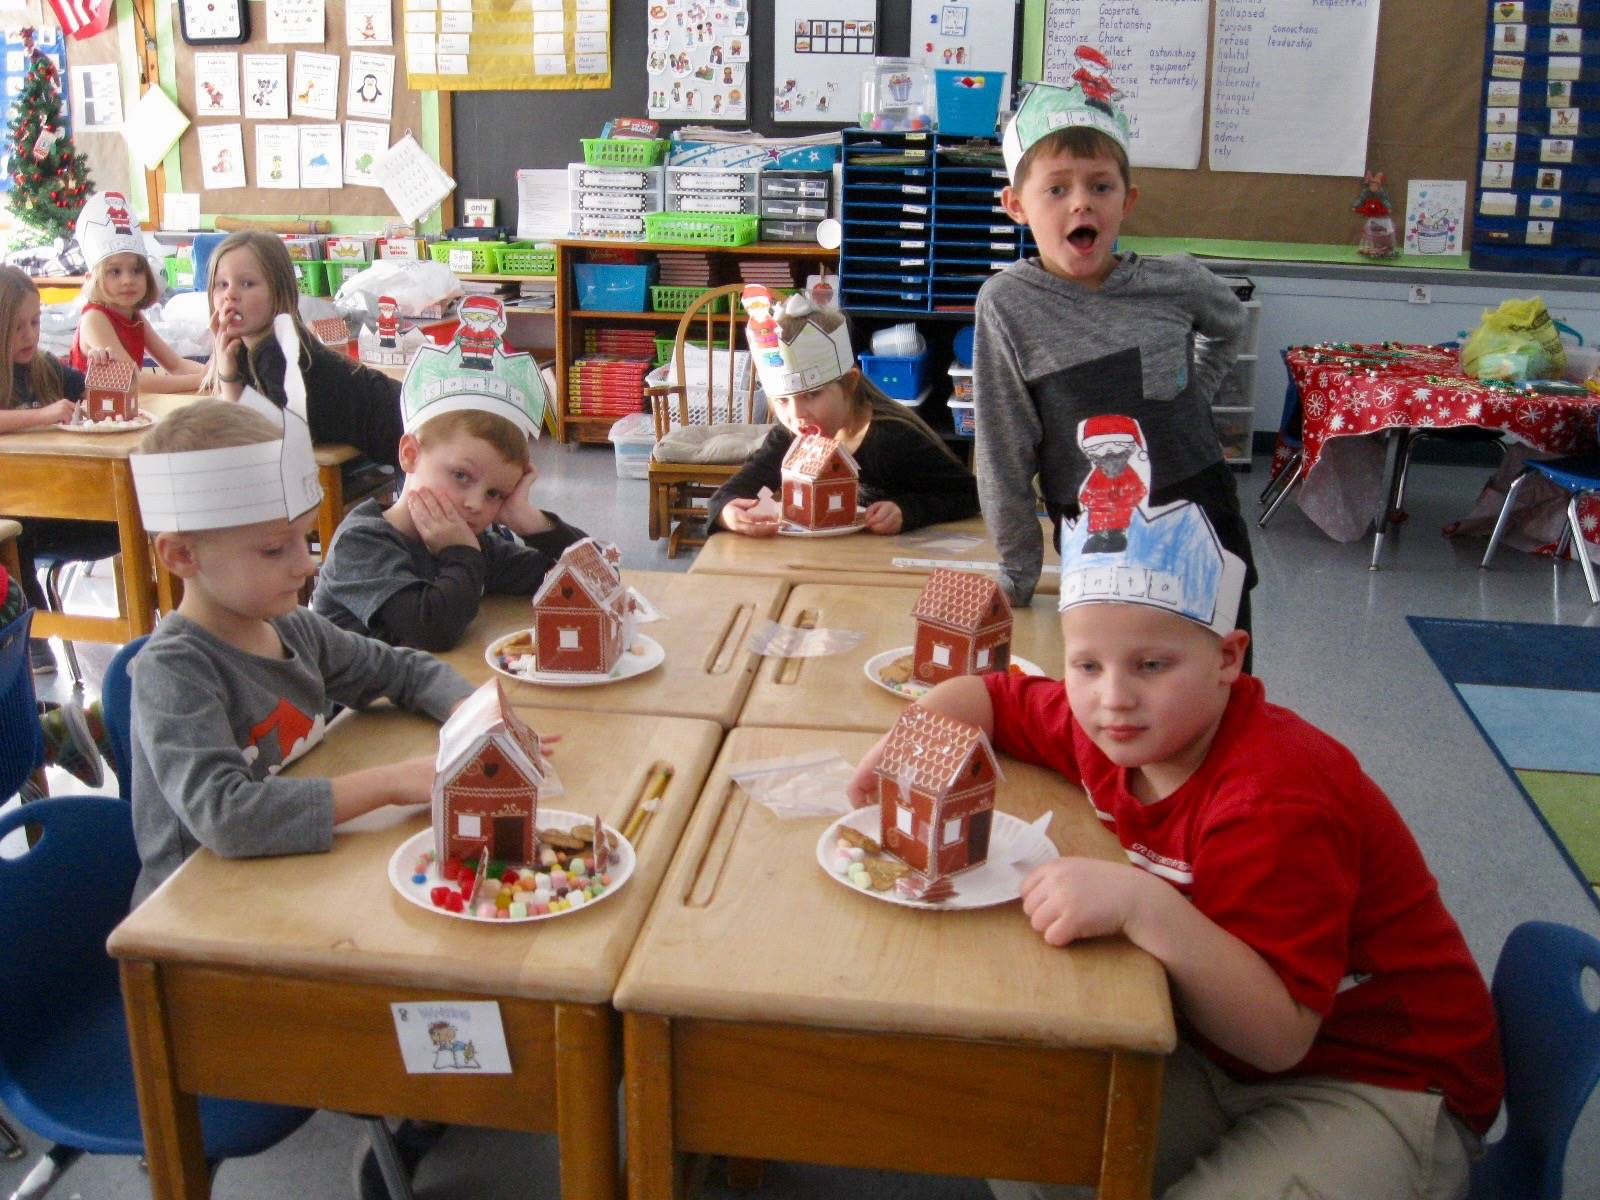 Students with gingerbread houses.